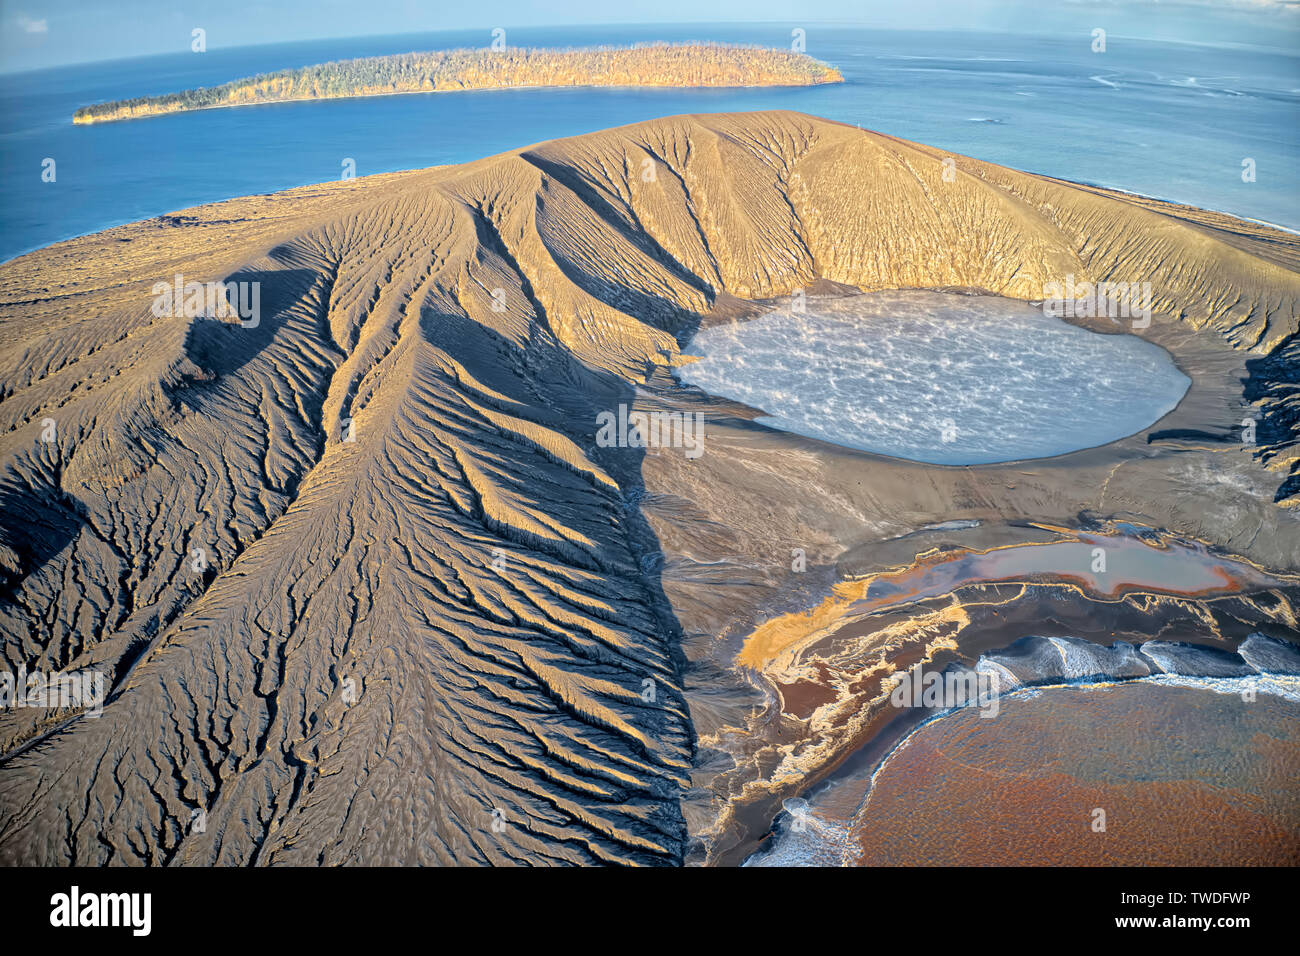 Geomorphology Stock Photos & Geomorphology Stock Images - Alamy